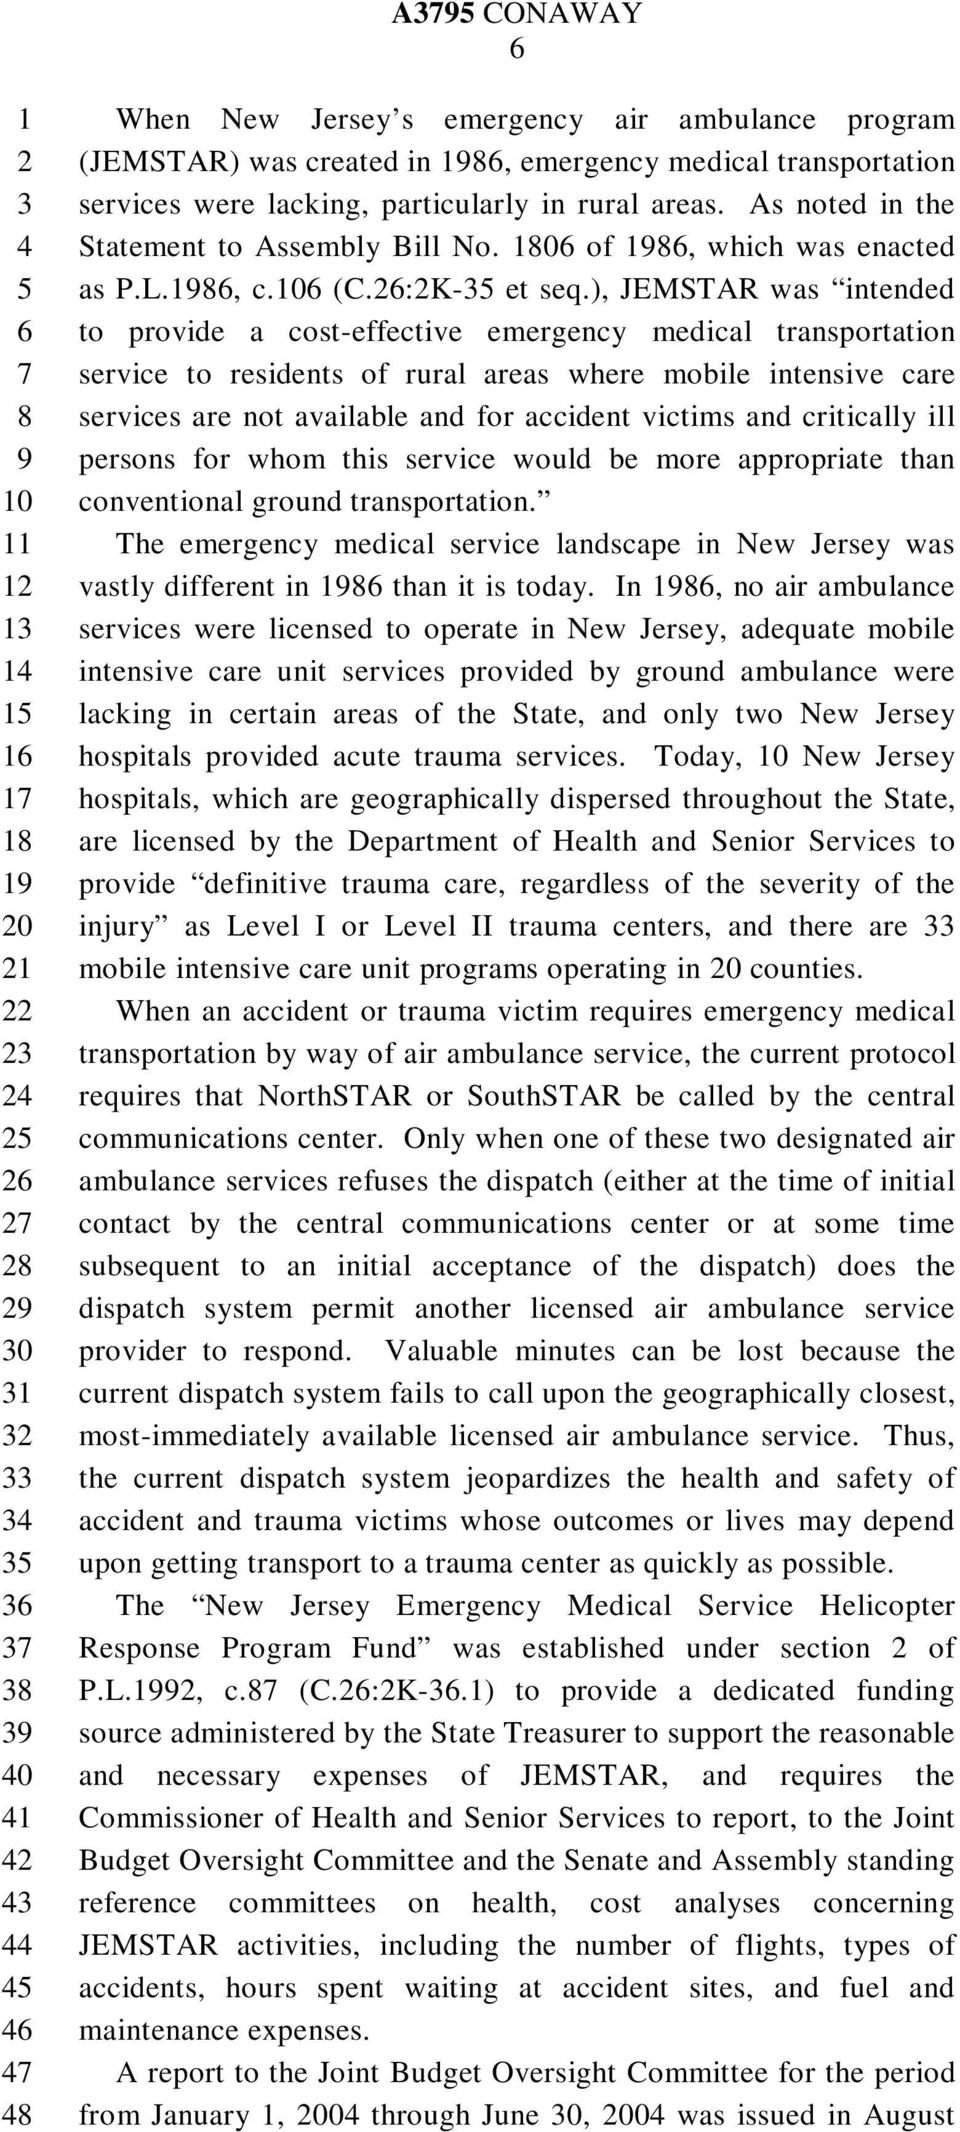 ), JEMSTAR was intended to provide a cost-effective emergency medical transportation service to residents of rural areas where mobile intensive care services are not available and for accident